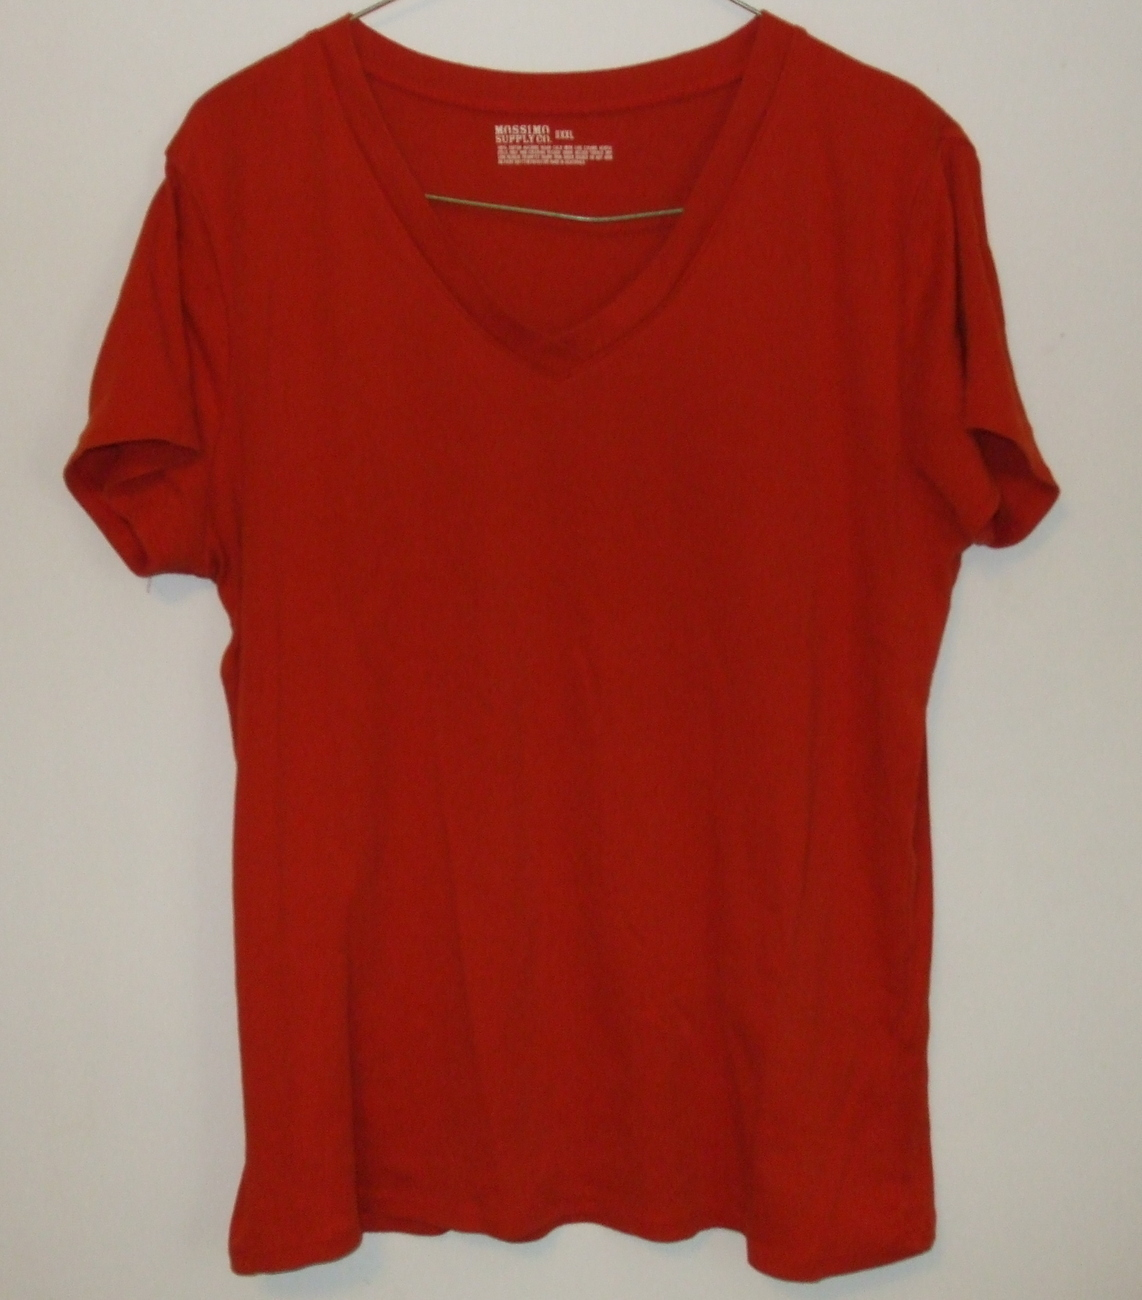 Womens Mossimo Supply Co Burnt Orange Short Sleeve V Neck Top Size XXL - $4.95